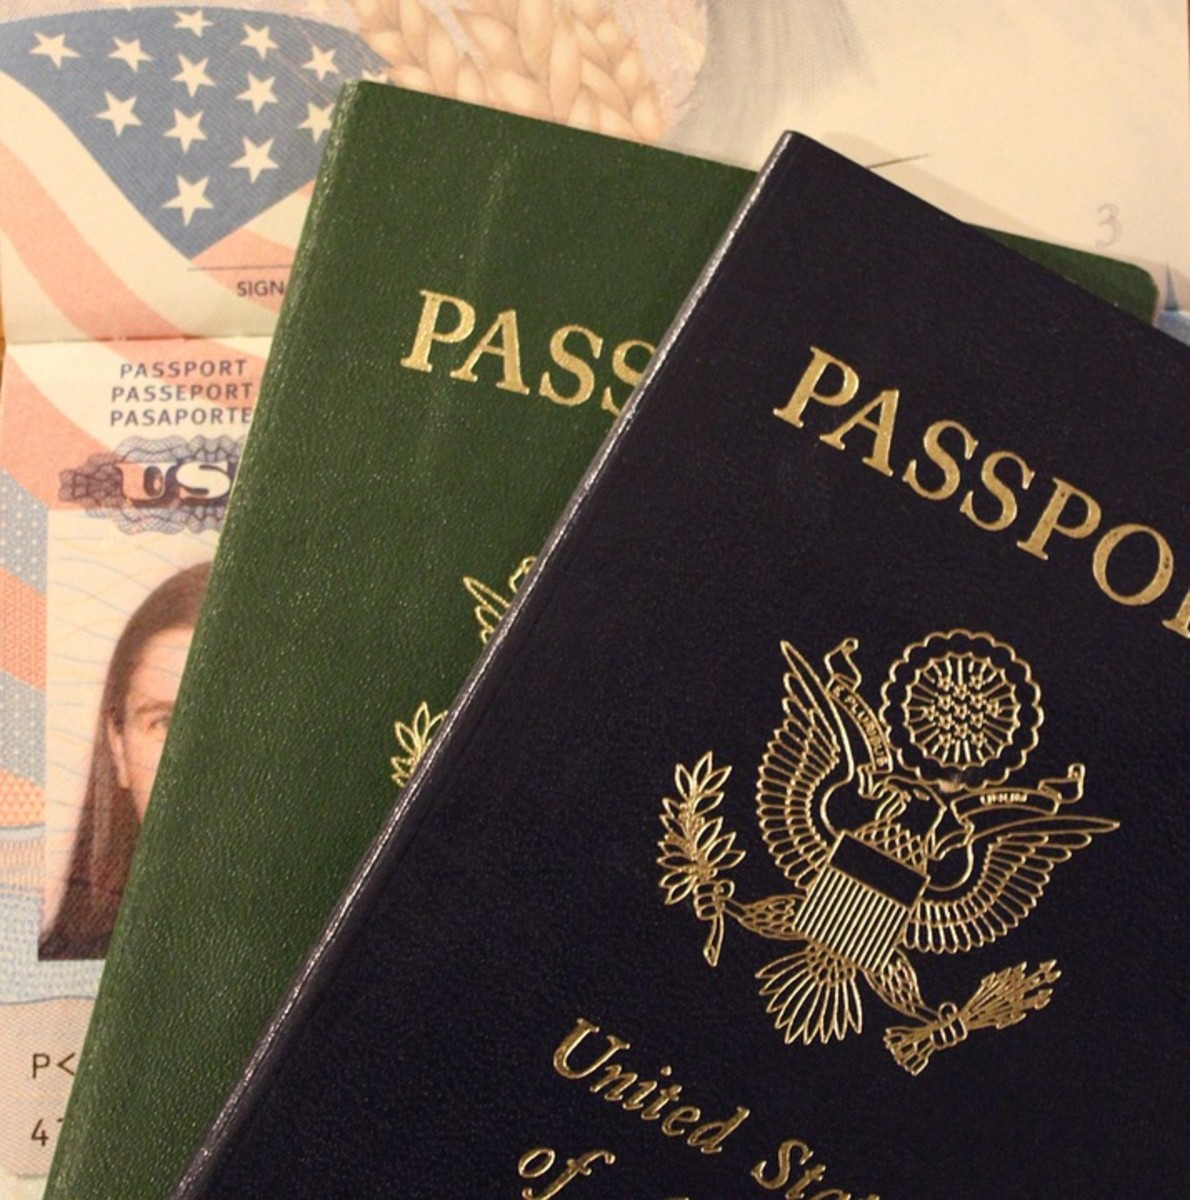 The immigration process is lengthy, frustrating at times, and expensive.